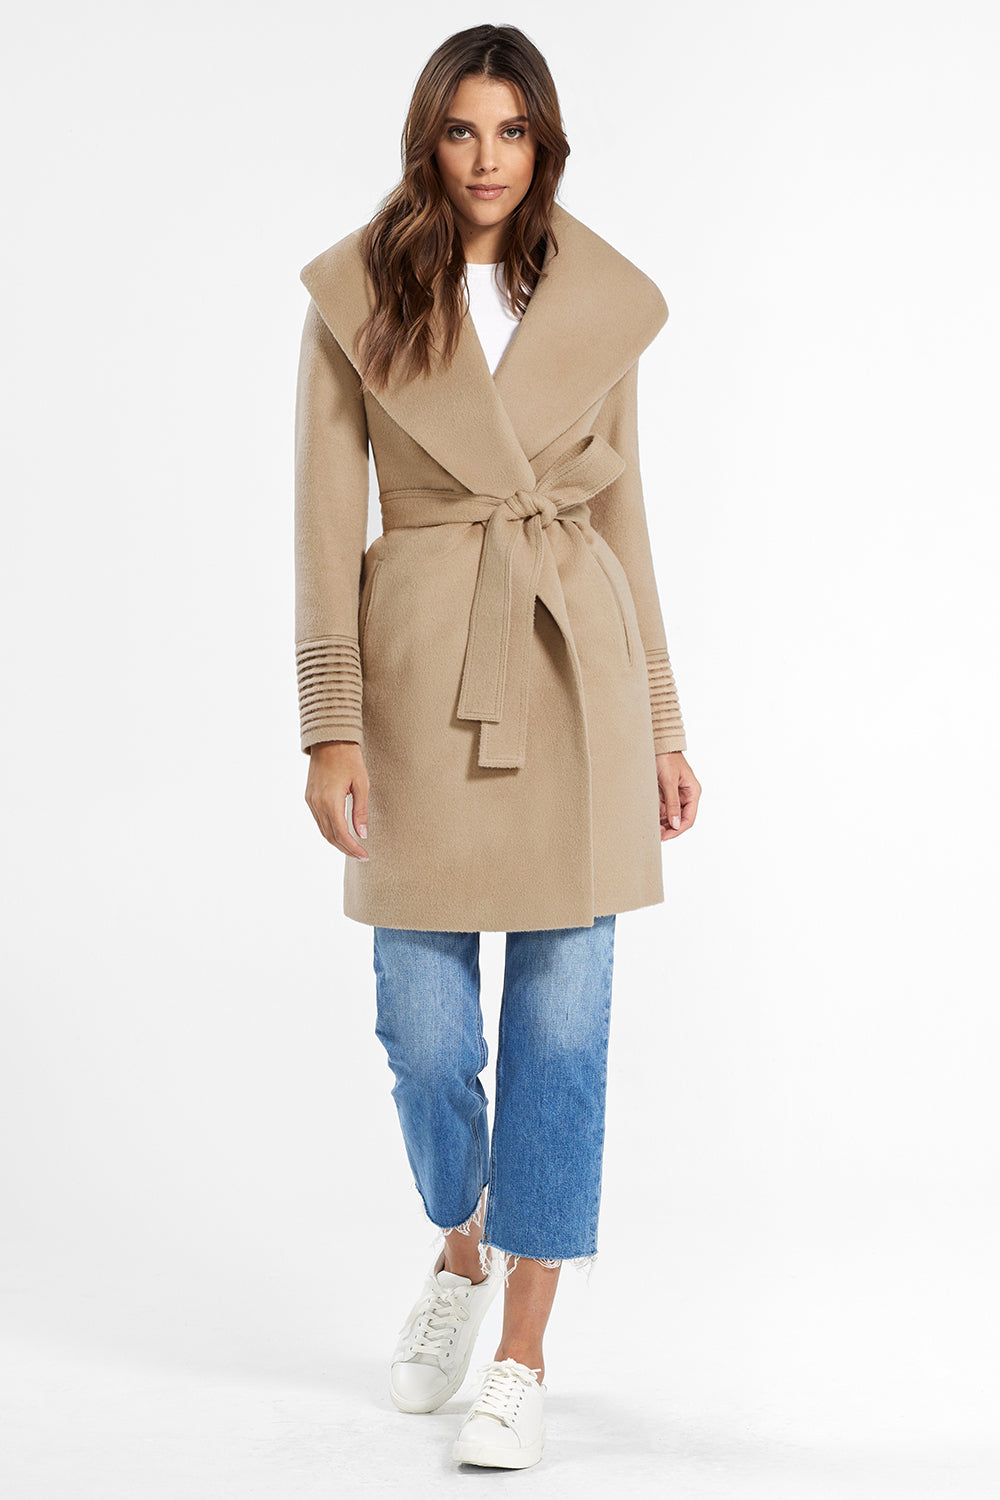 Sentaler Mid Length Shawl Collar Wrap Coat featured in Baby Alpaca and available in Camel. Seen from front.